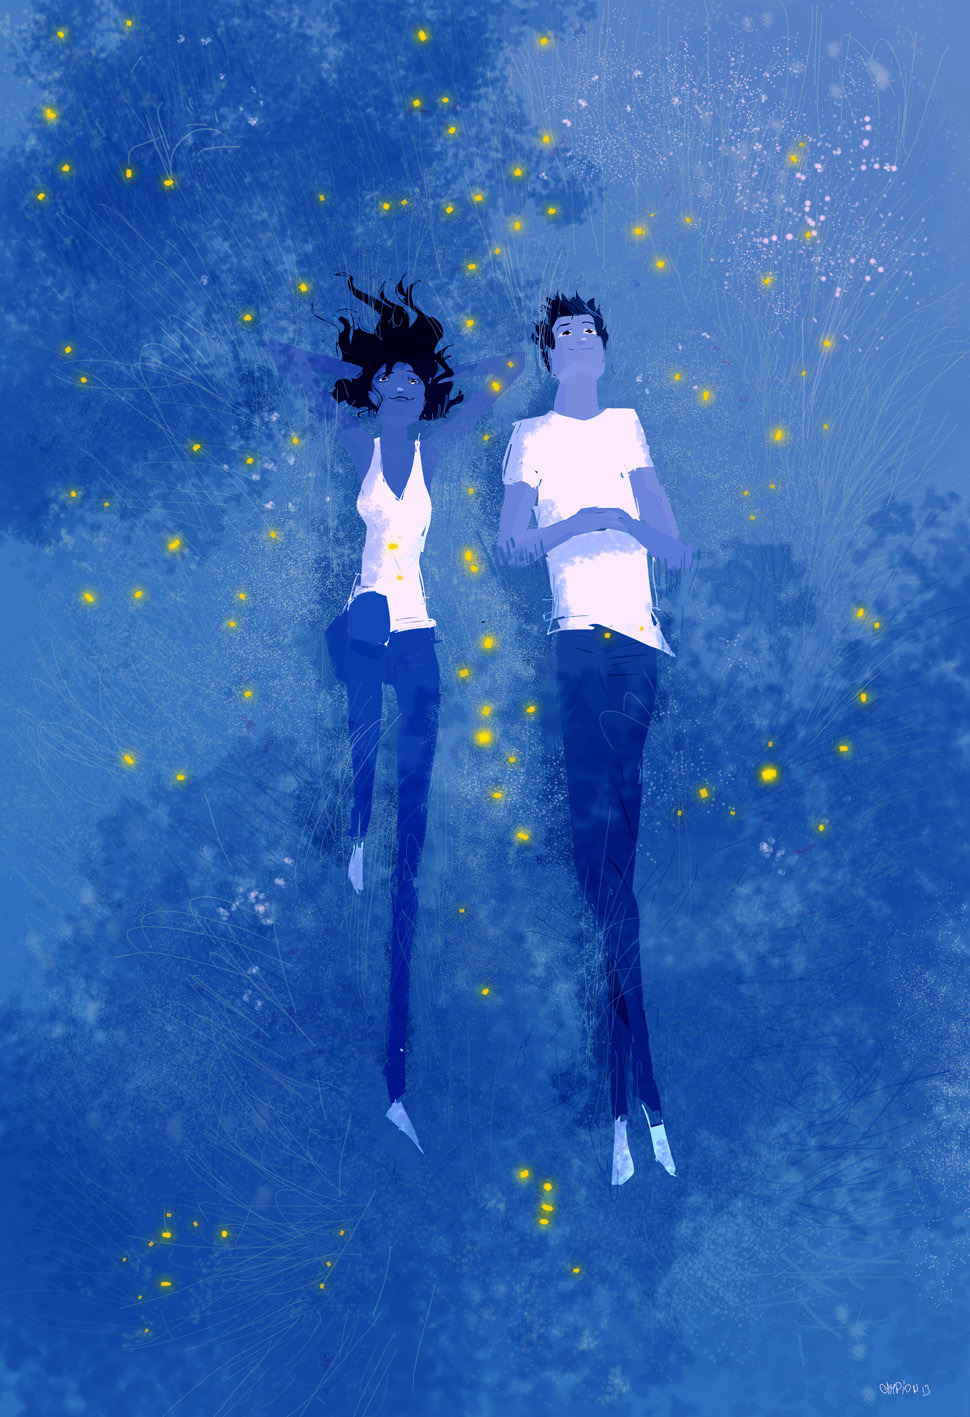 pascalcampion:  Blue Grass and Fireflies